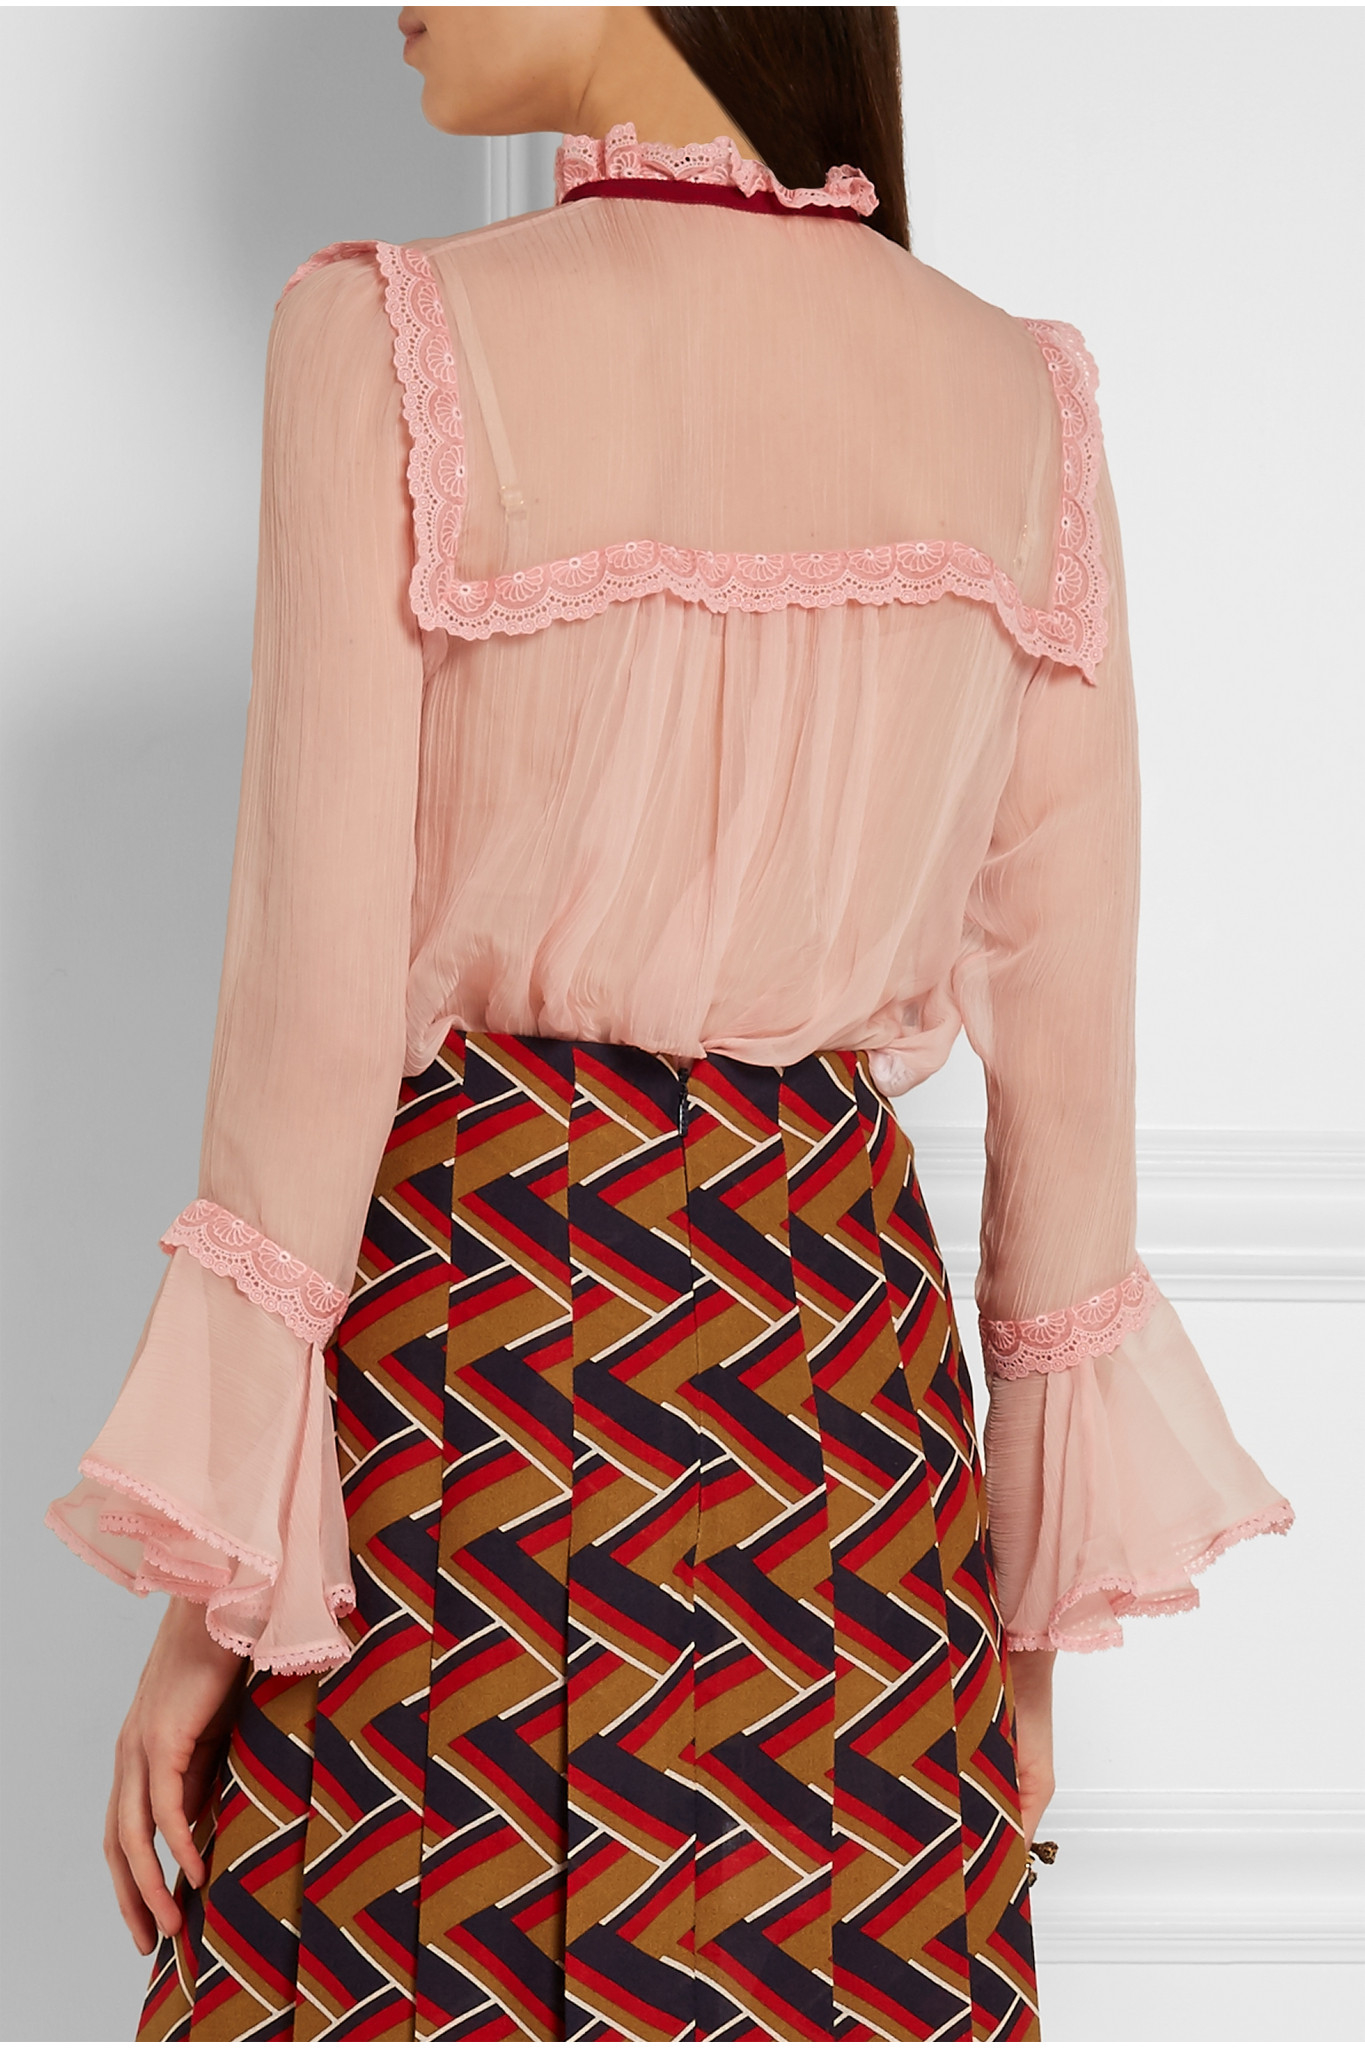 Lyst Gucci Lace trimmed Crinkled Silk chiffon Blouse in Pink